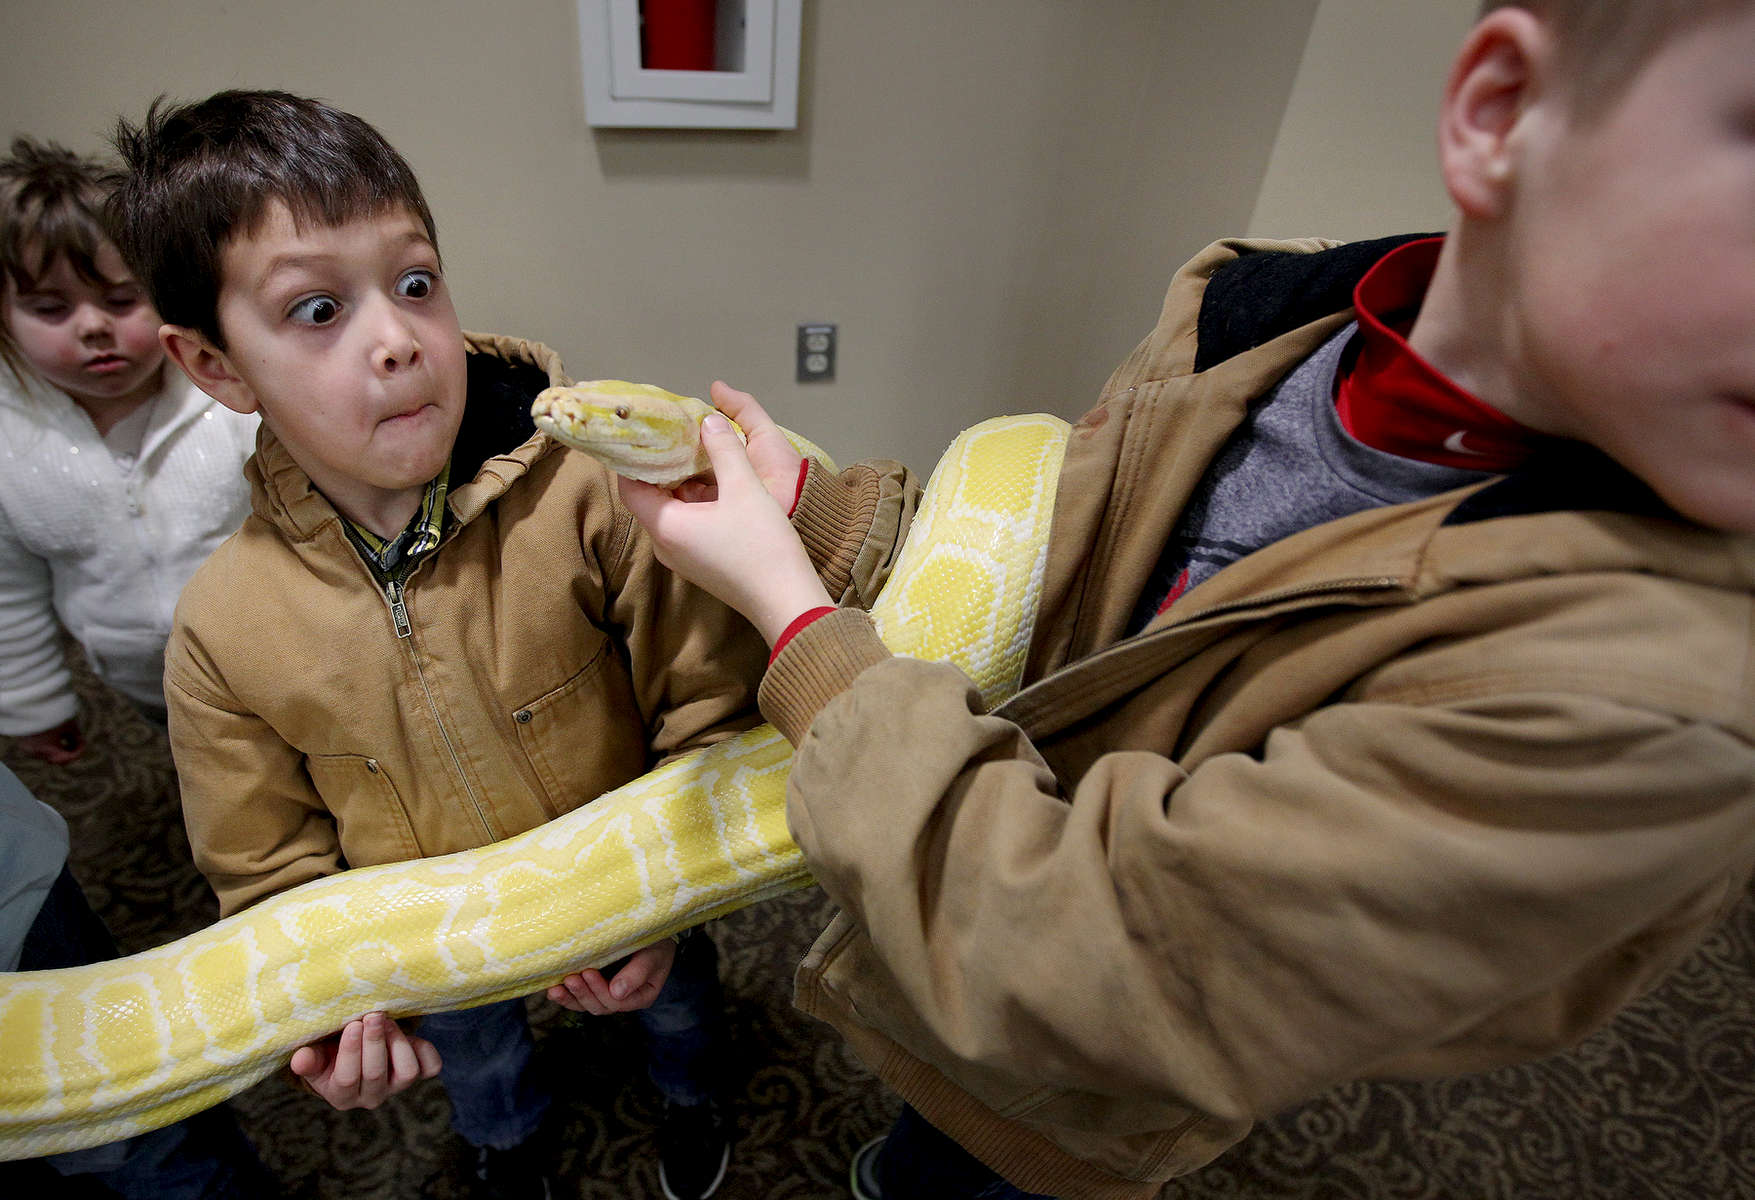 January 24, 2016 - Xanden Hanners, 6, can't hide his trepidation as he comes face-to-face with Bama-Cakes, a 45 pound, ten and half-foot-long, three-year-old, female Burmese Python, during Repticon Memphis at the Landers Center in Southaven. Hundreds of of different snakes, frogs, lizards, spiders and other assorted exotic pets were on the display for reptile enthusiasts. (Mike Brown/The Commercial Appeal)